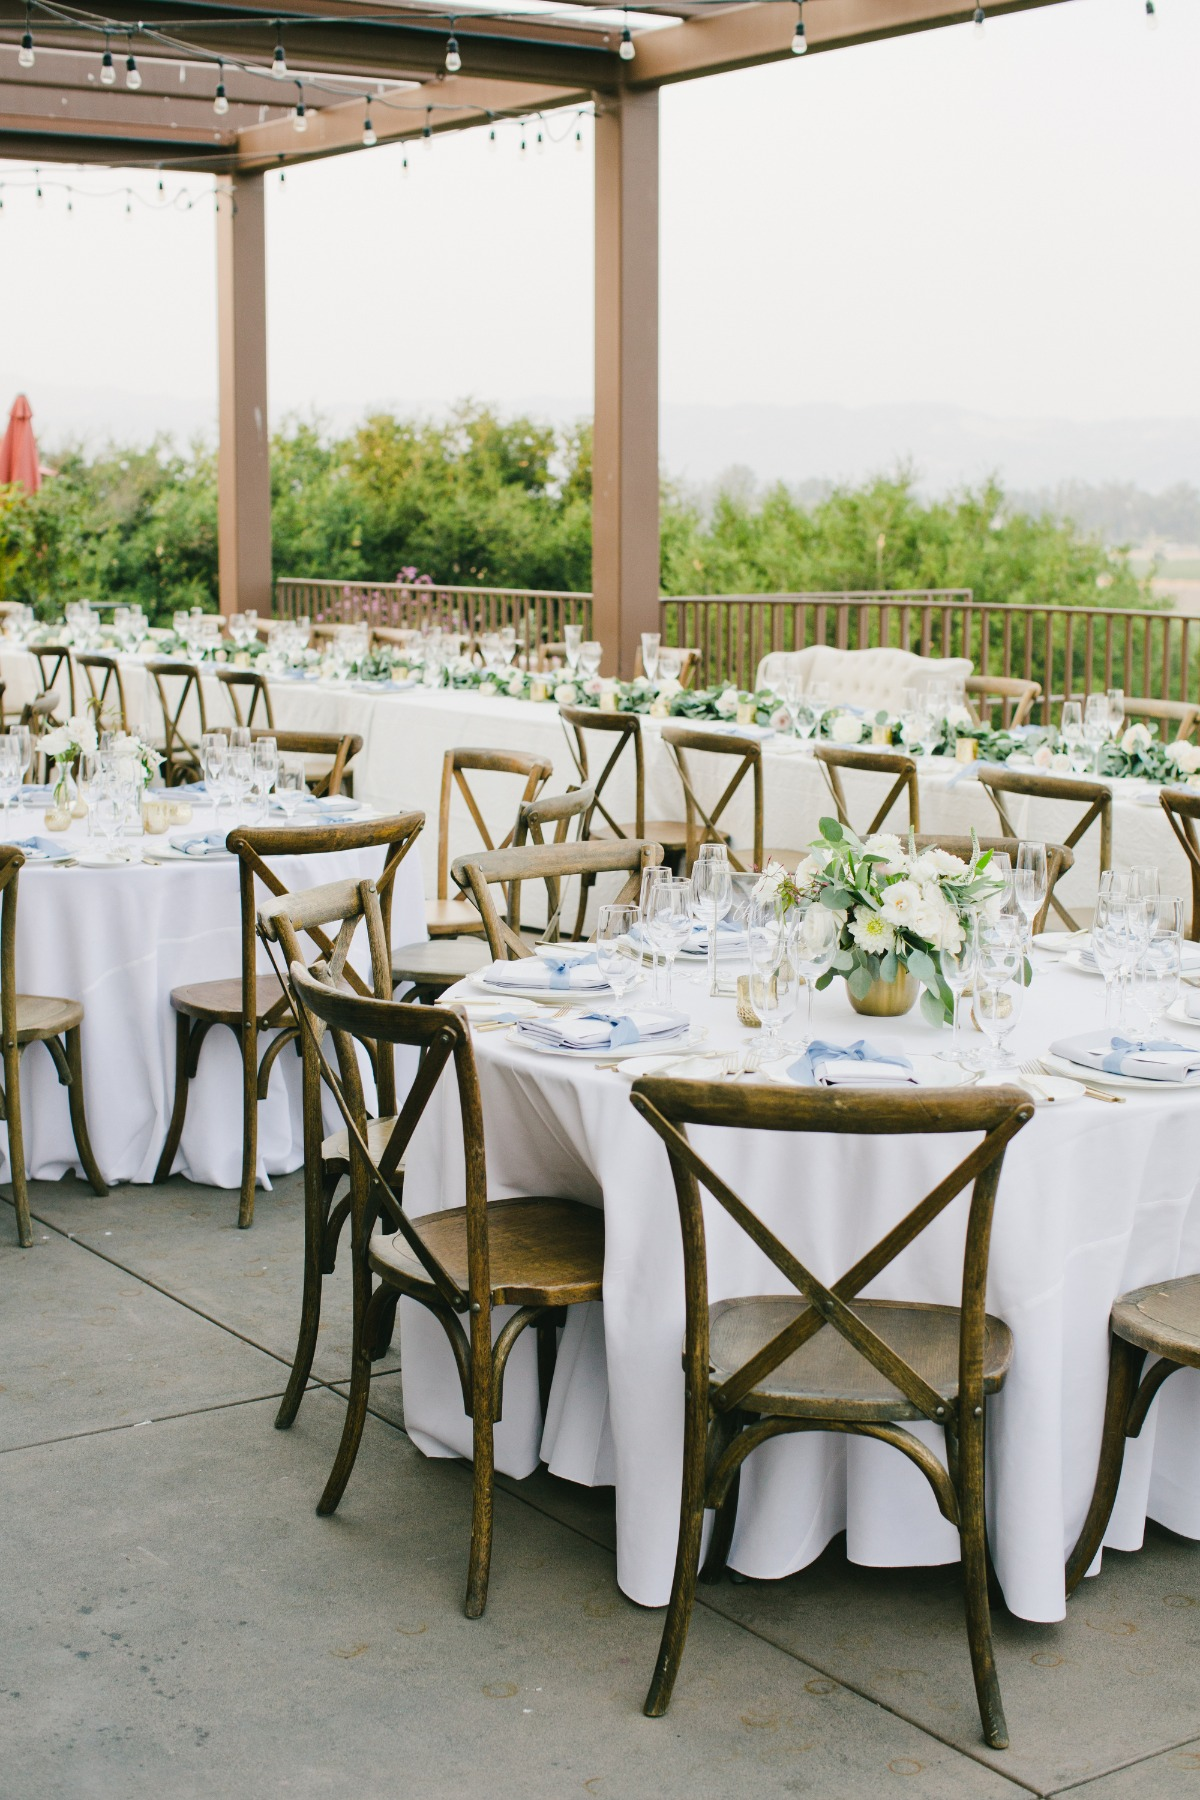 Natural chic wedding reception